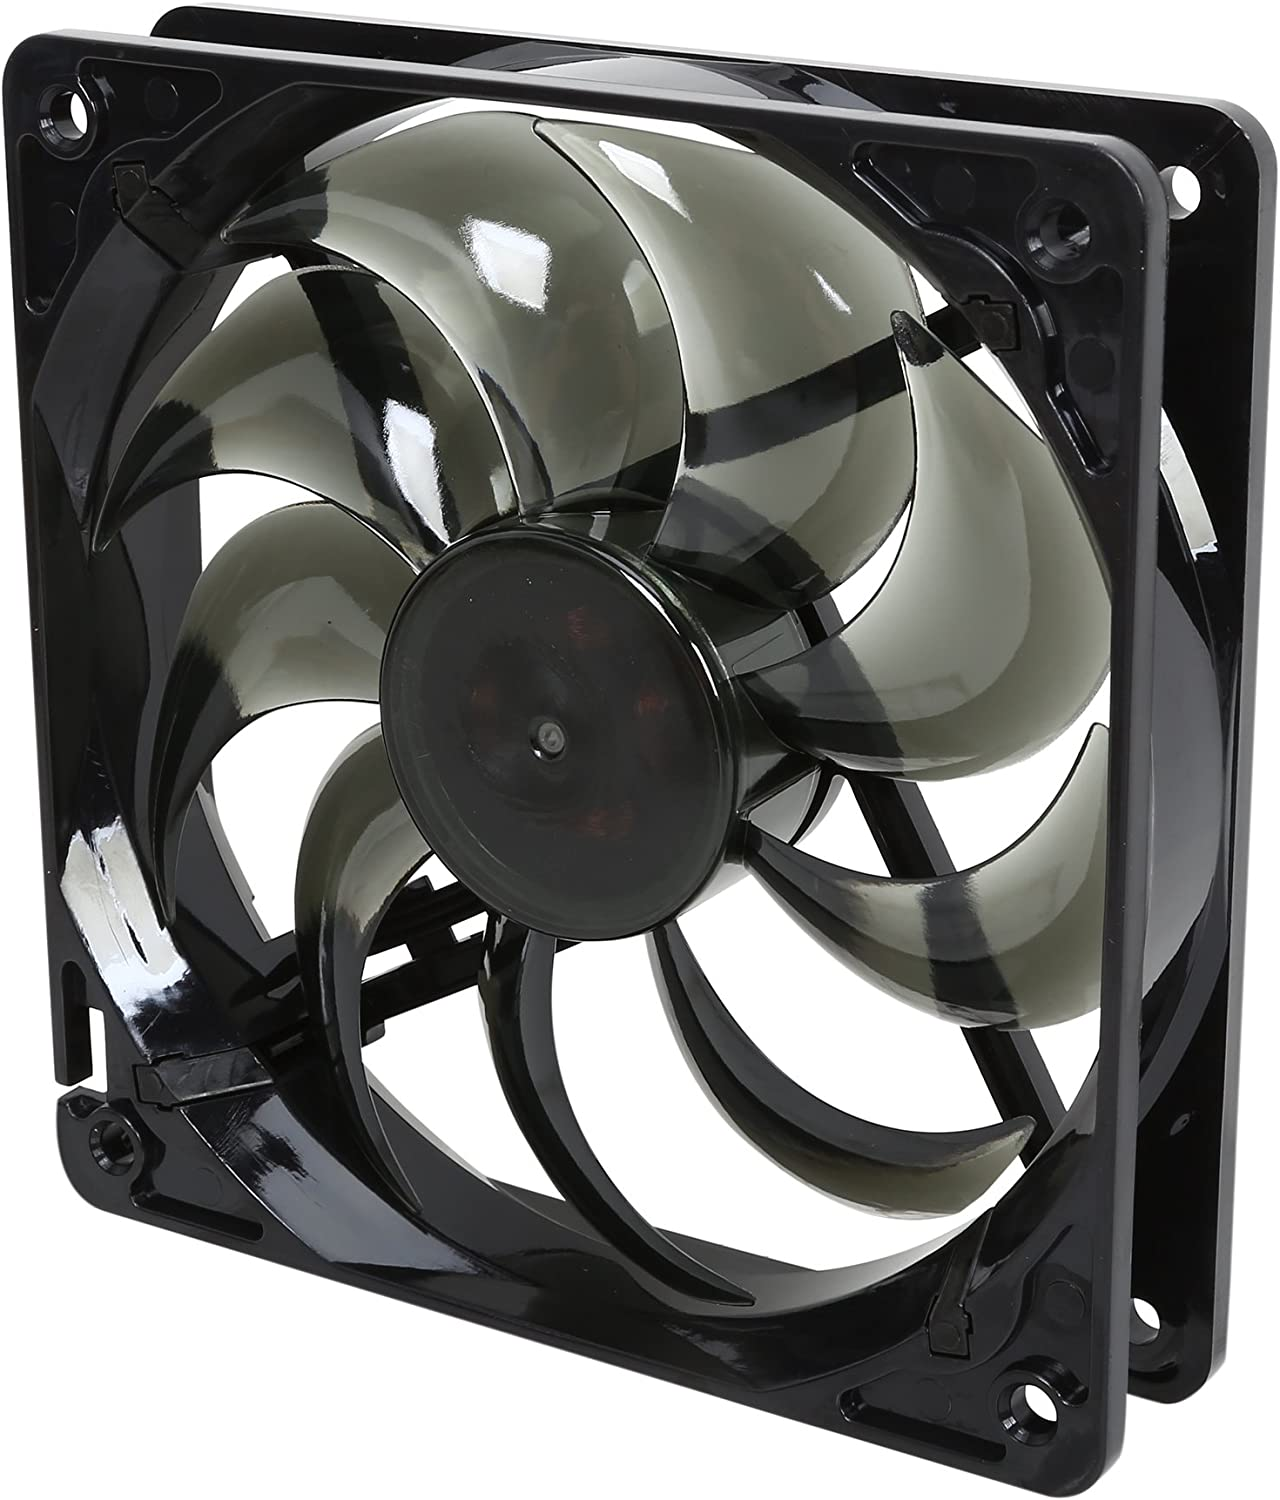 Rosewill 120mm LED Cooling Case Fan for Computer Cases Cooling Blue RFTL-131209B